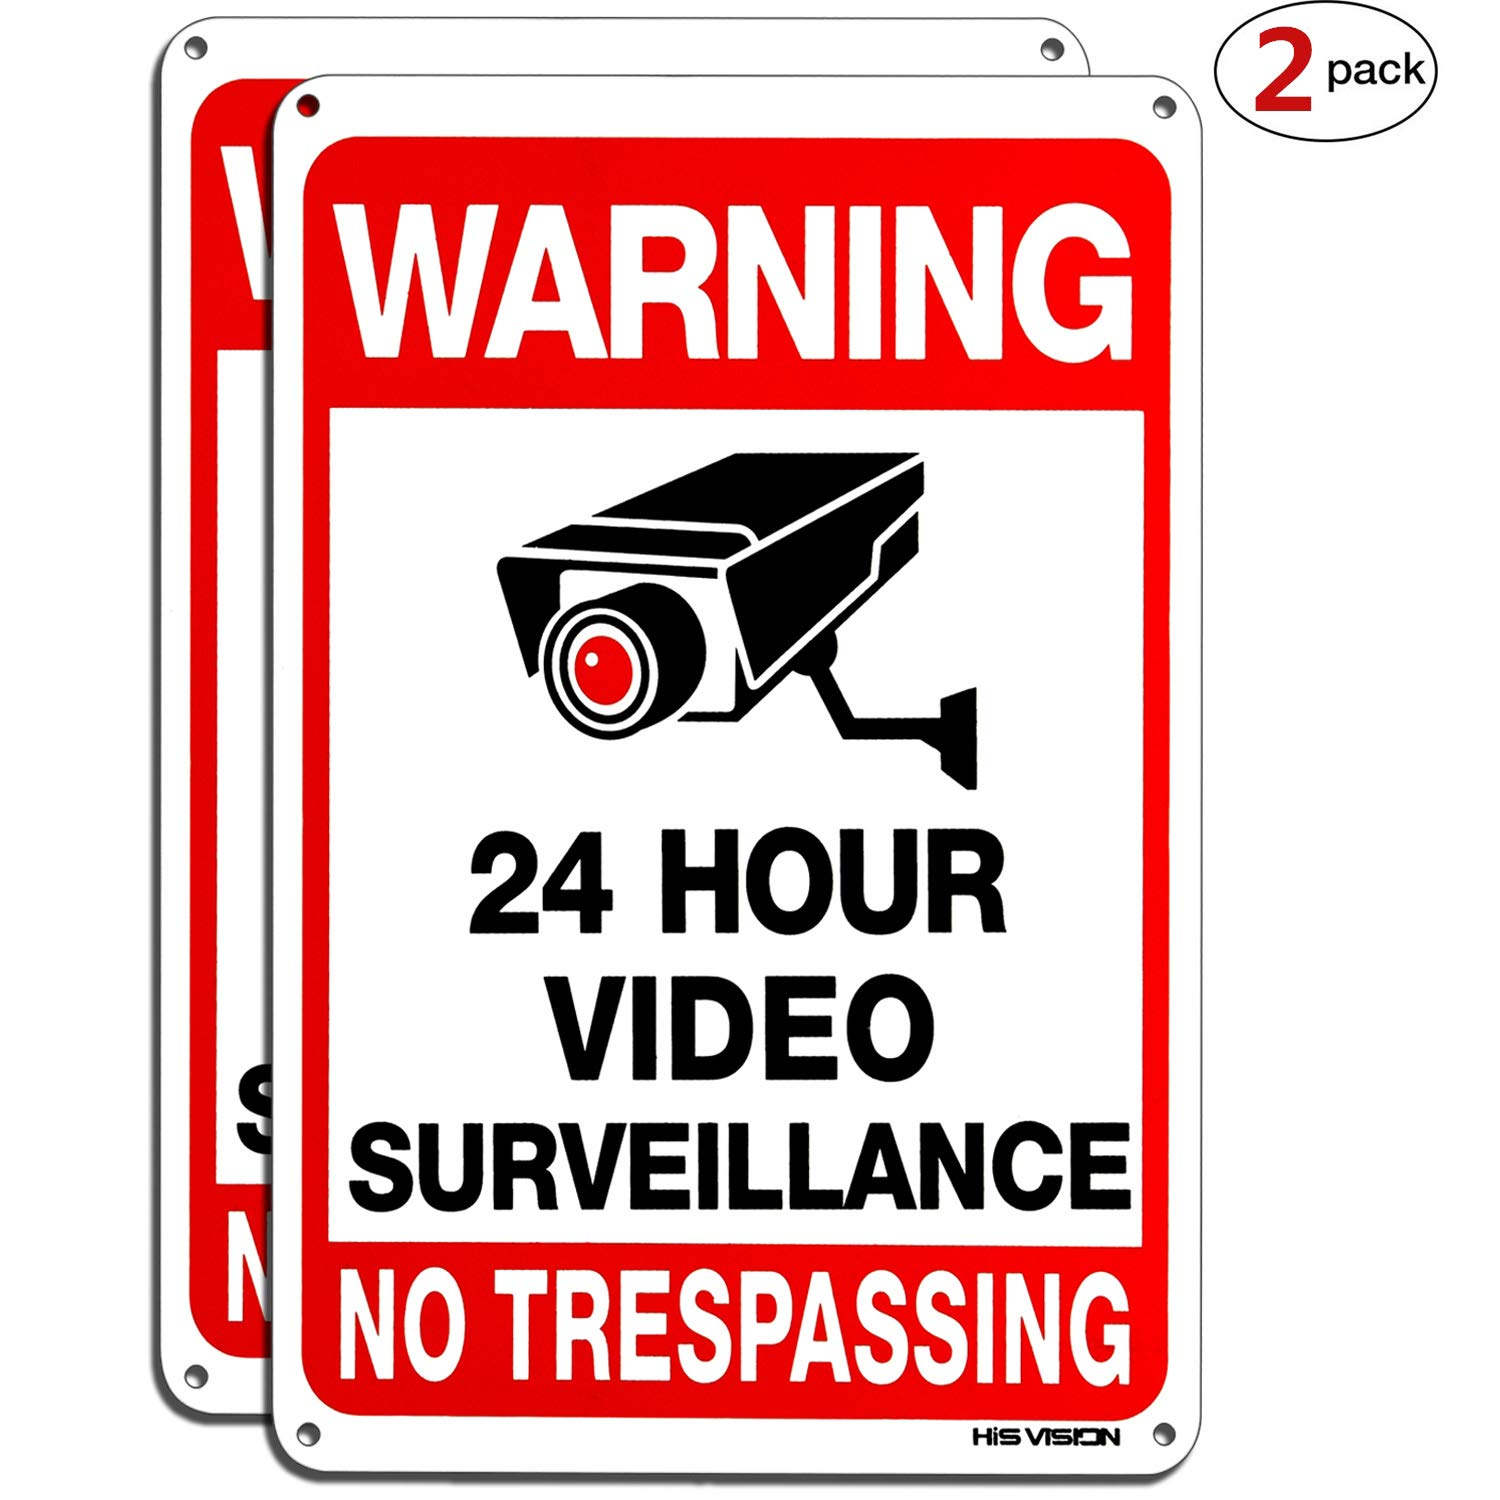 "HISVISION Video Surveillance Sign 2-Pack, No Trespassing Metal Reflective Warning Sign,UV Protected & Waterproof, 10""x 7"" 0.40 Aluminum Indoor Or Outdoor Use for Home Business CCTV Security Camera"